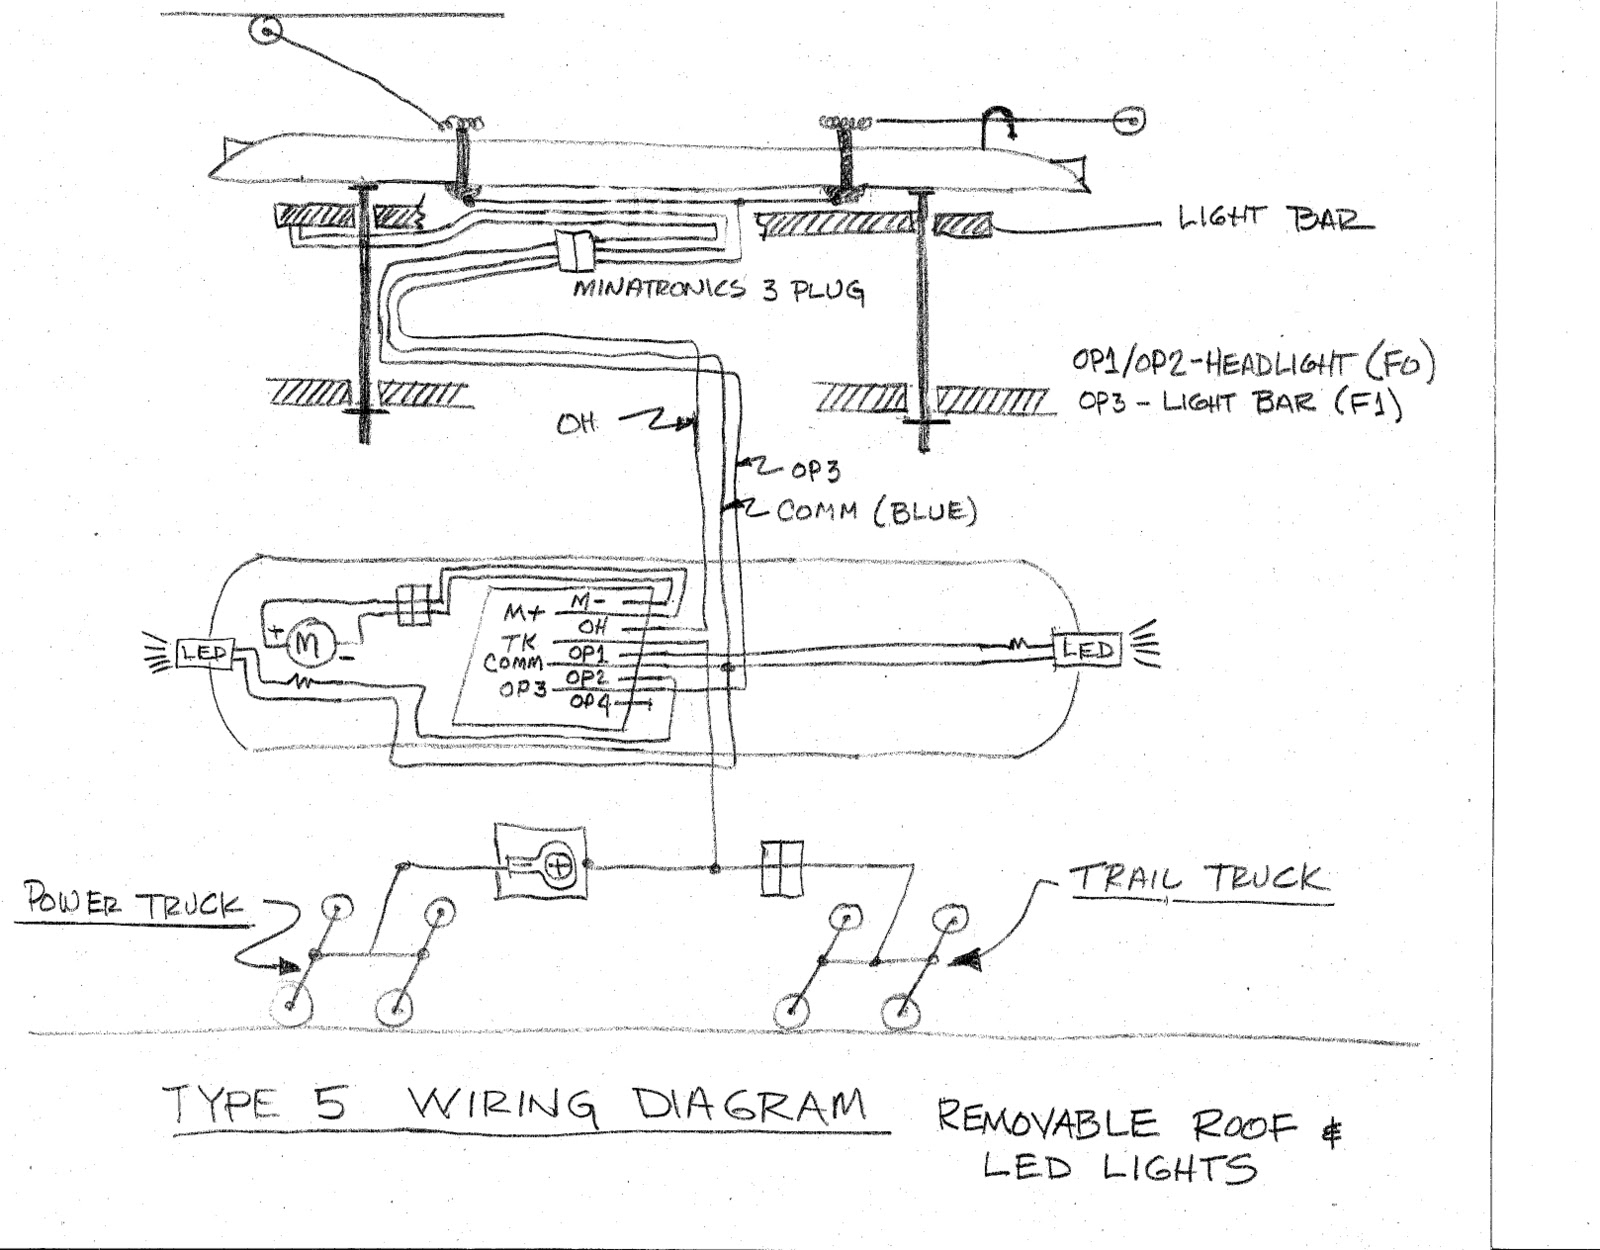 wiring diagrams bachmann o scale. wiring. free download car wiring, wiring diagram